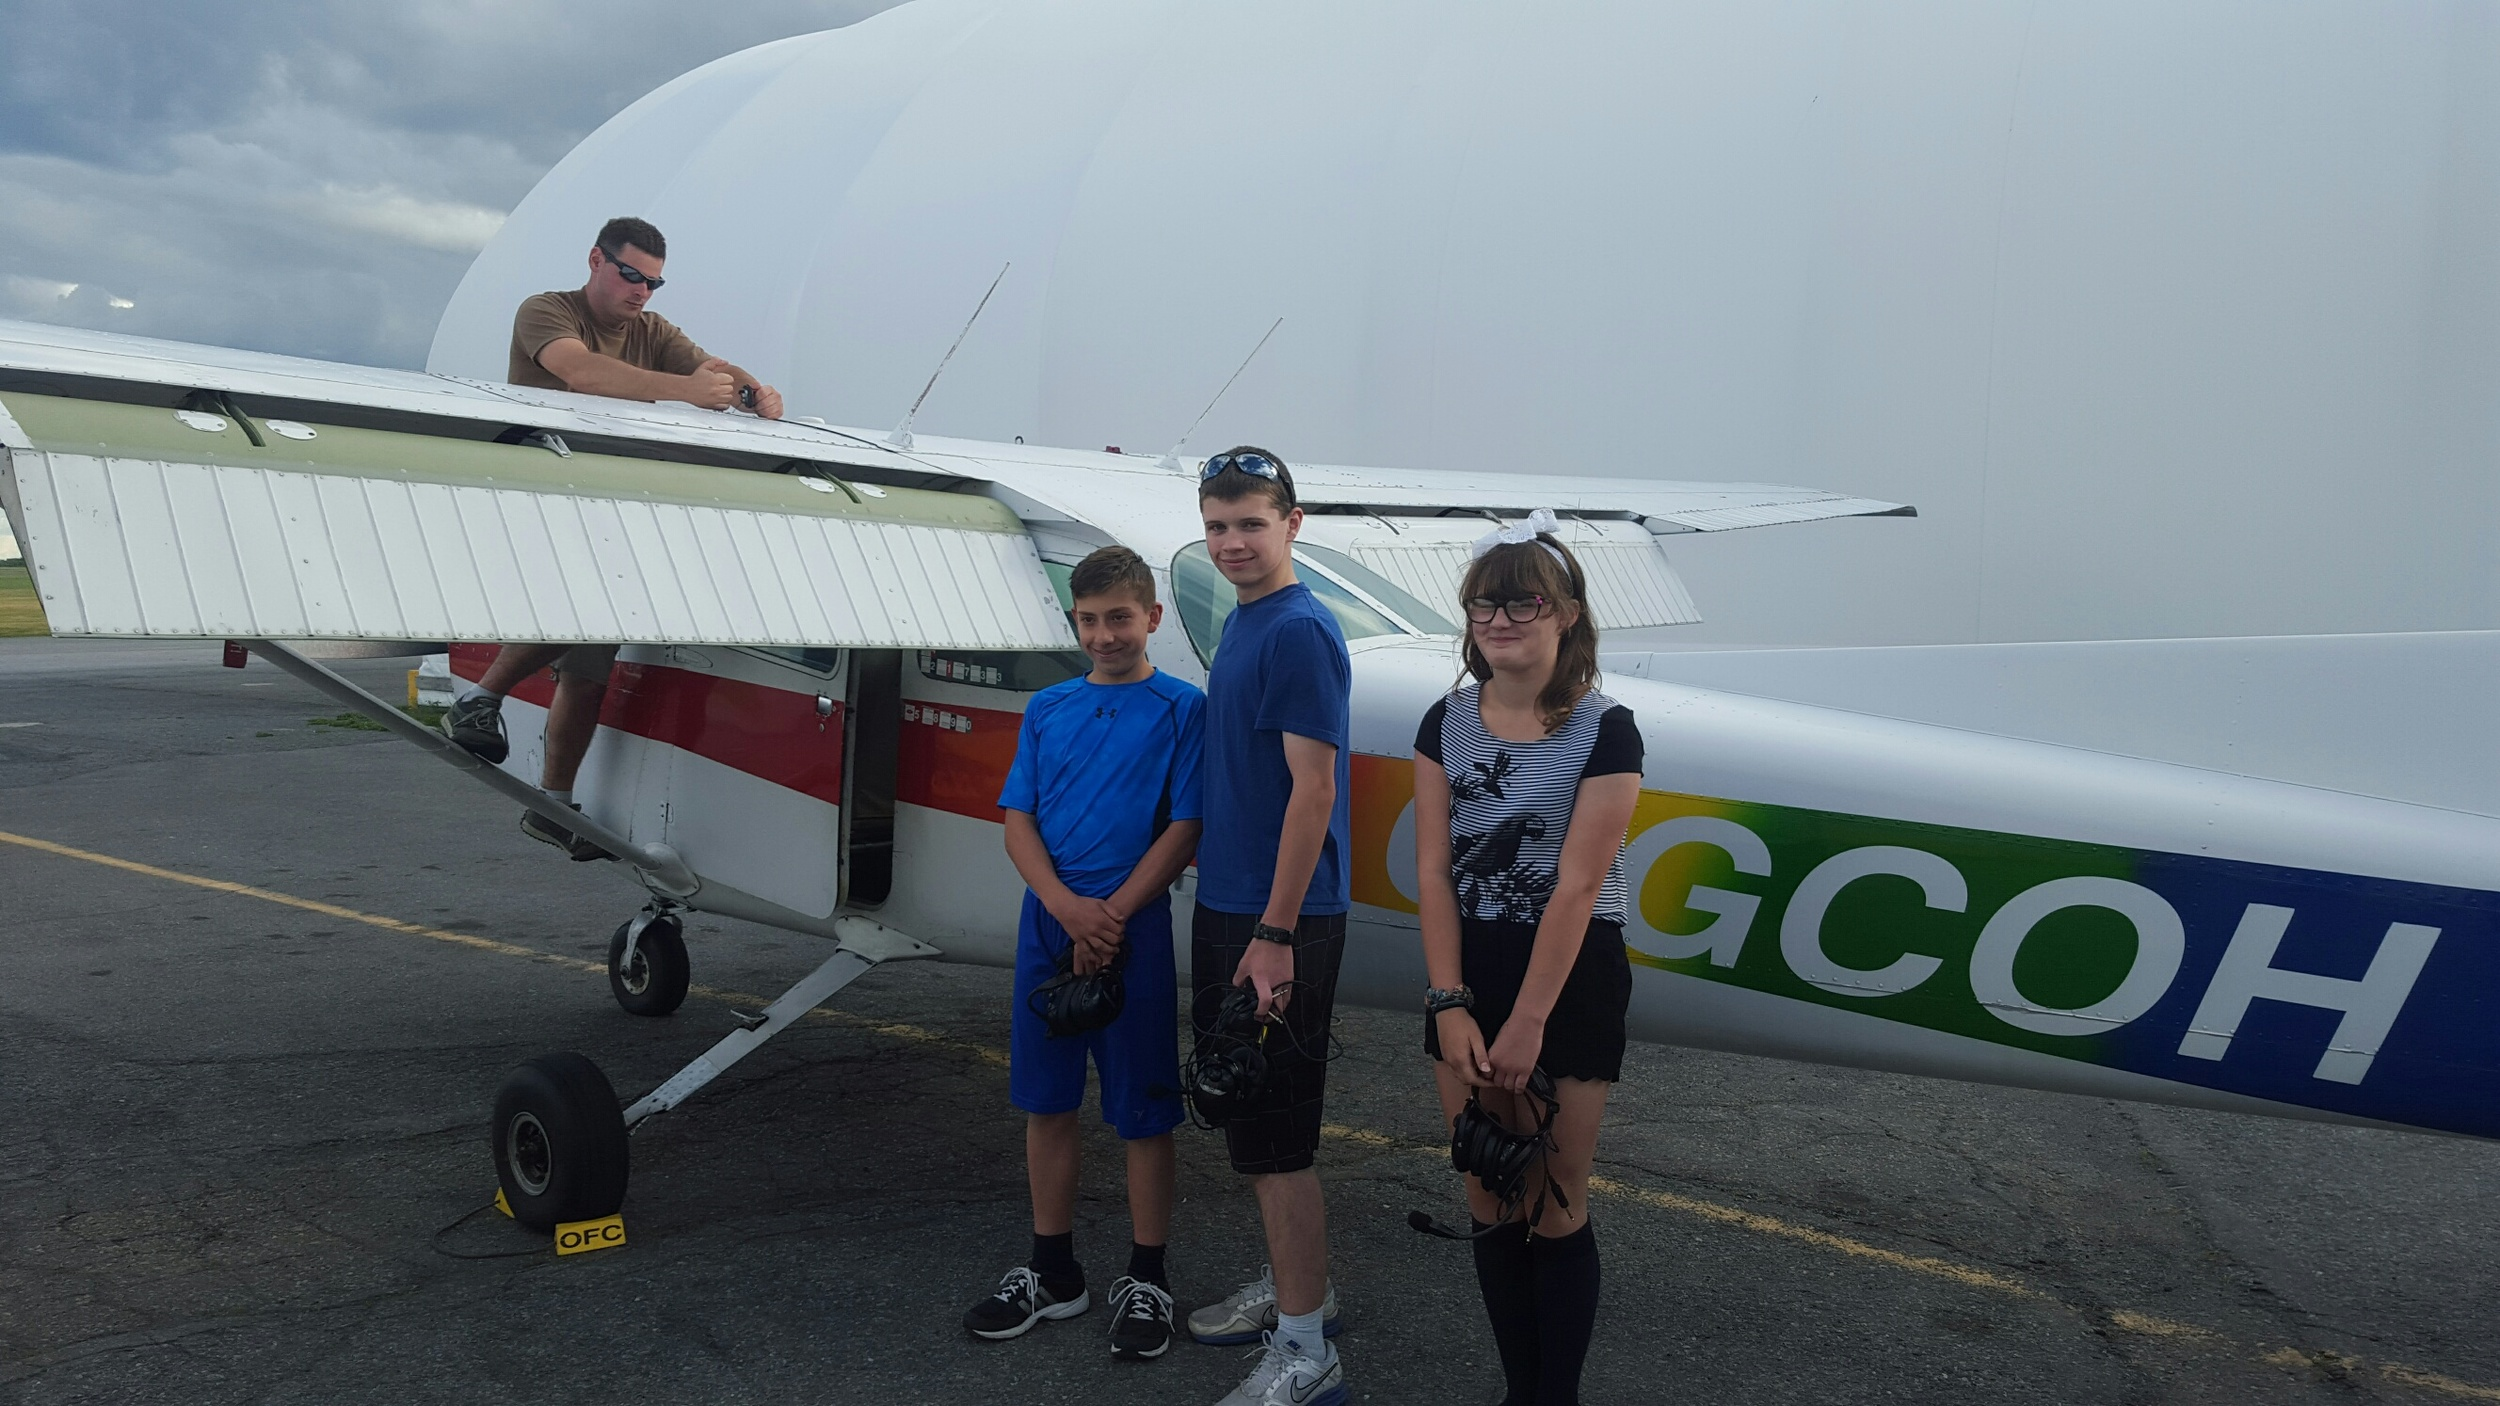 Lt (or Captain for these purposes) Keller completing the pre-flight inspection on Cessna C172N C-GCOH at the Ottawa Flying Club, at the Ottawa International Airport. / Cdt's Mercier, Briere, and Rhyne pose for a picture before departure.